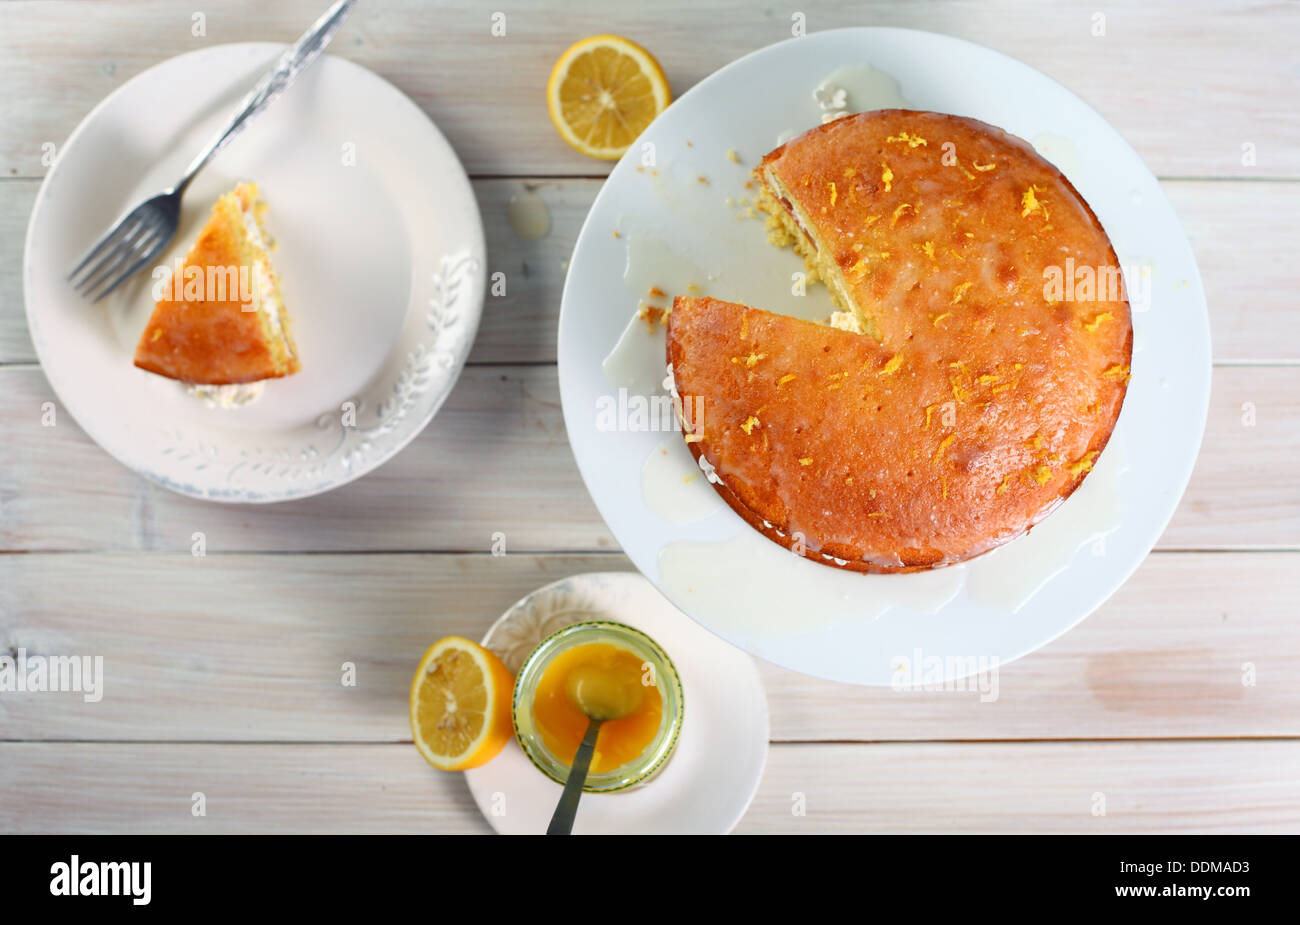 Lemon cake - Stock Image